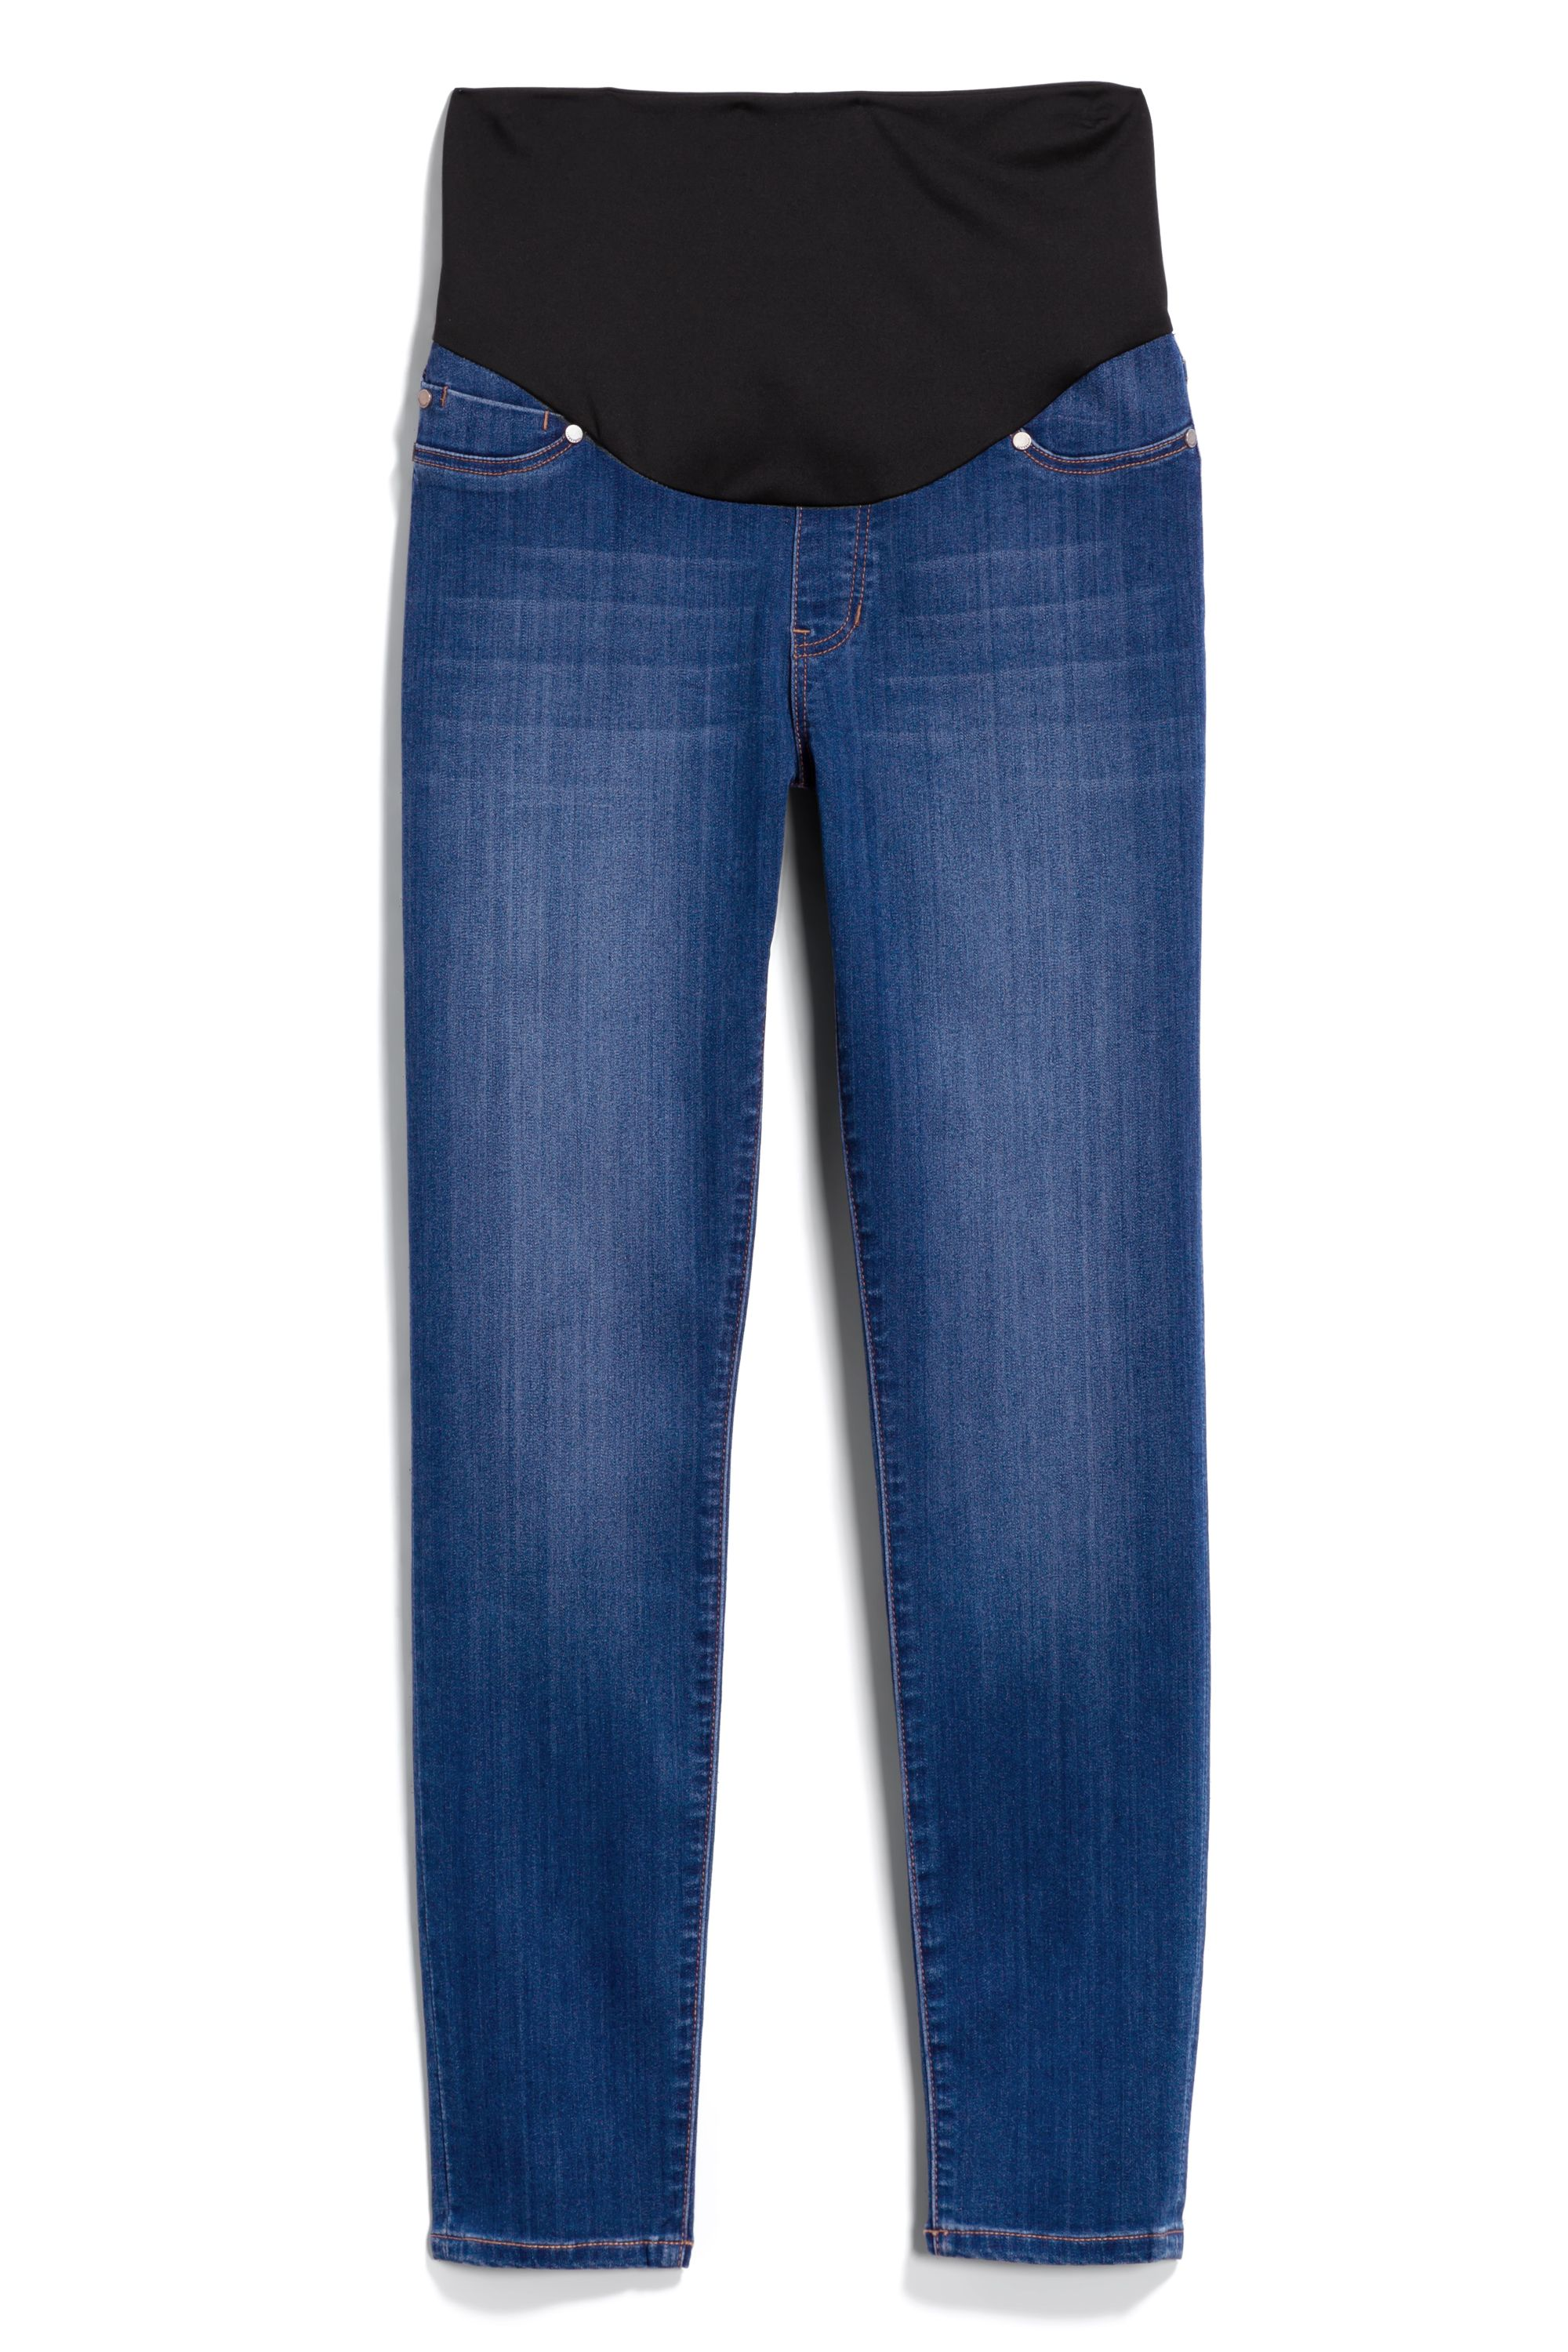 3eff2005bd27b Liverpool Mira skinny ankle maternity jeans | Closet Potential ...